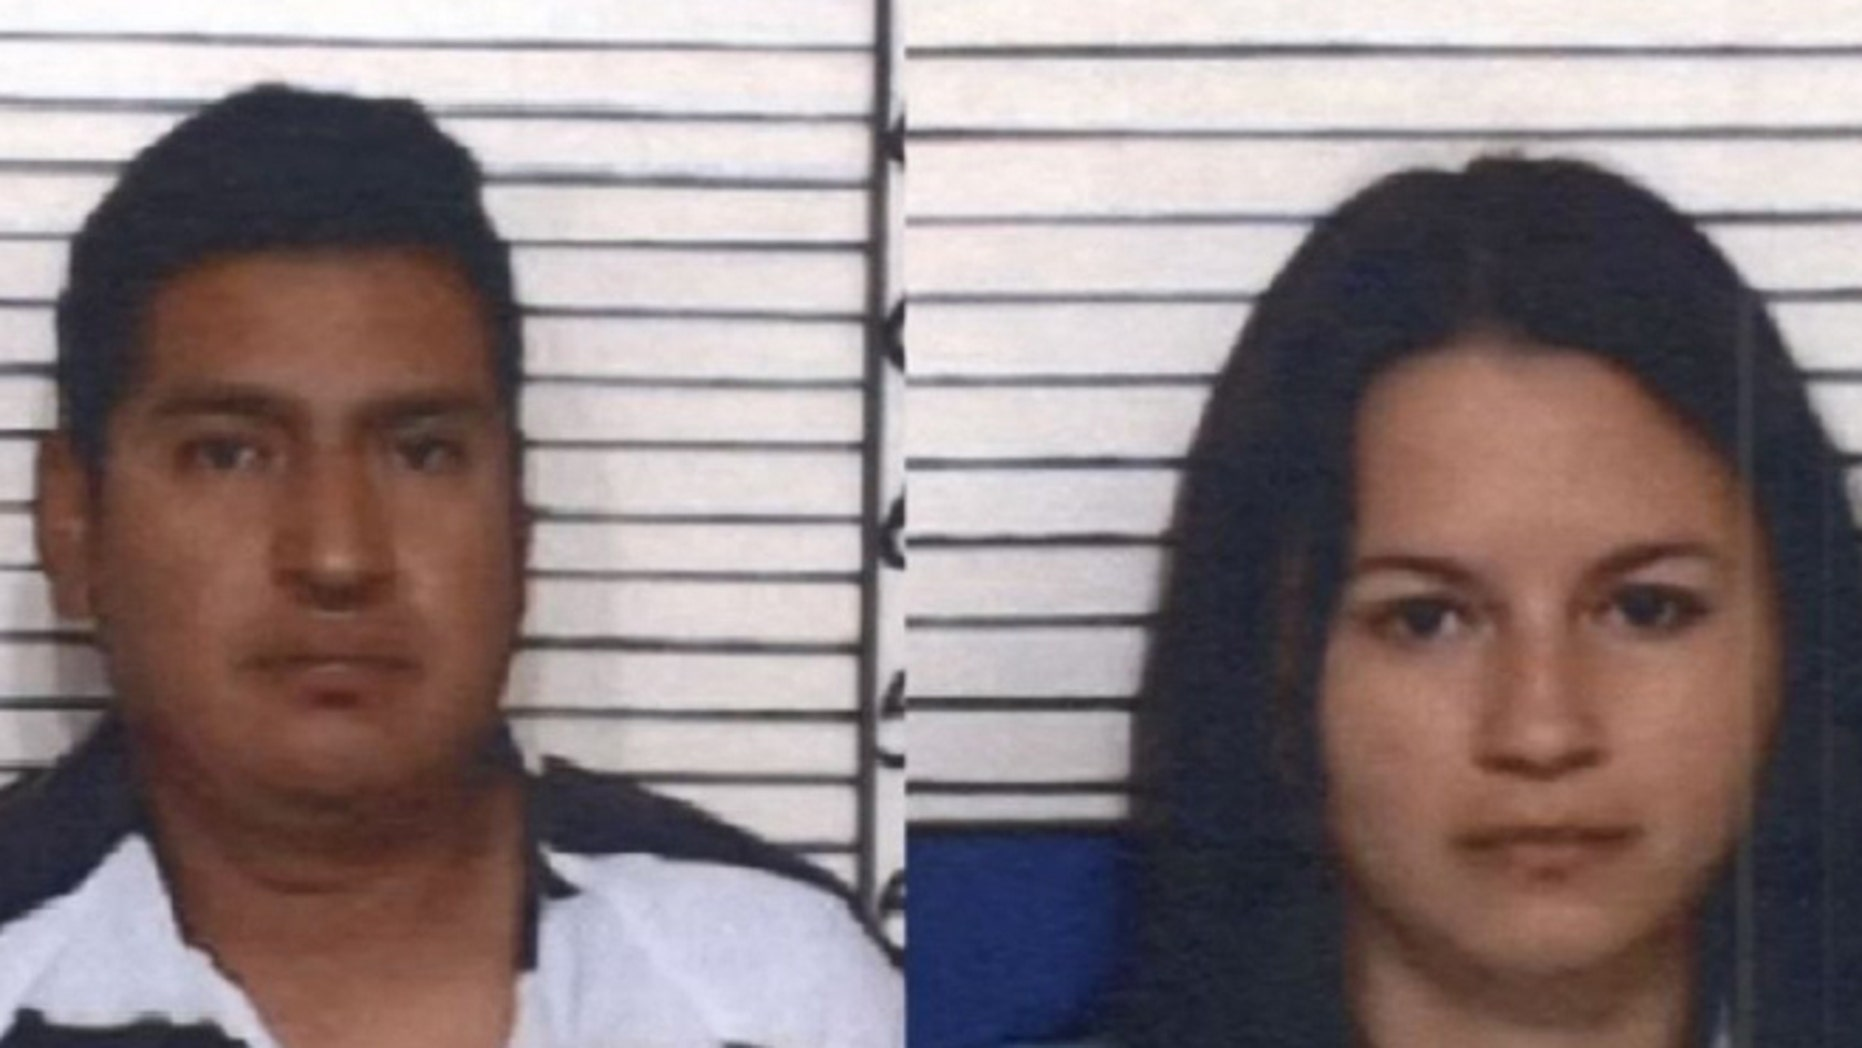 Julio Jimenez-Ramirez and Gloria Romero Perez are facing felony charges for trafficking a child and are being held at the Comal County jail on a $500,000 bond and an immigration hold. (Courtesy: Comal County Jail)